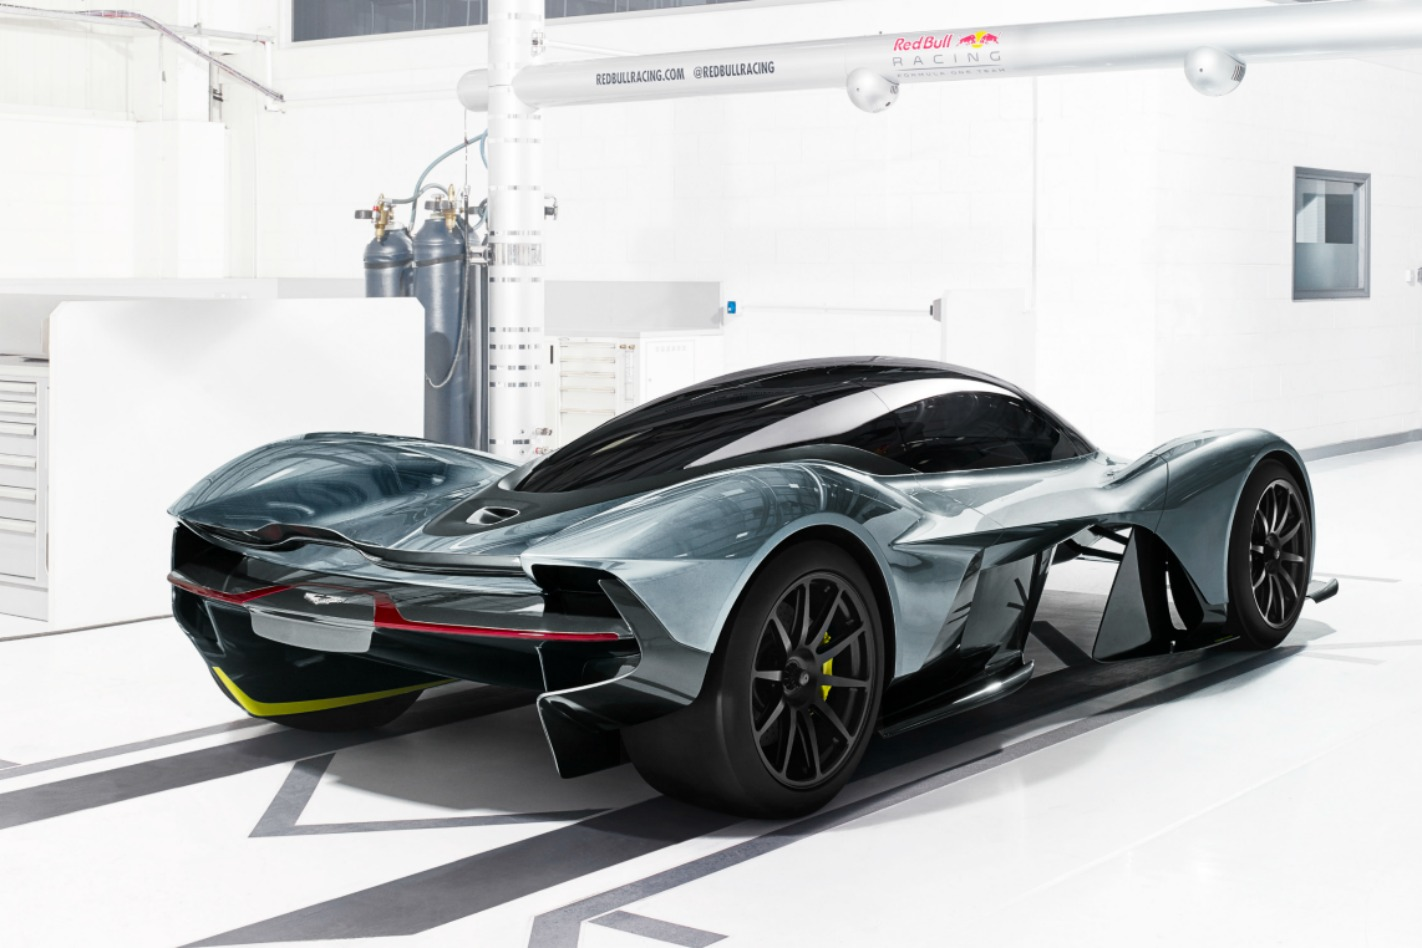 Aston Martin AM-RB 001 Rear Main